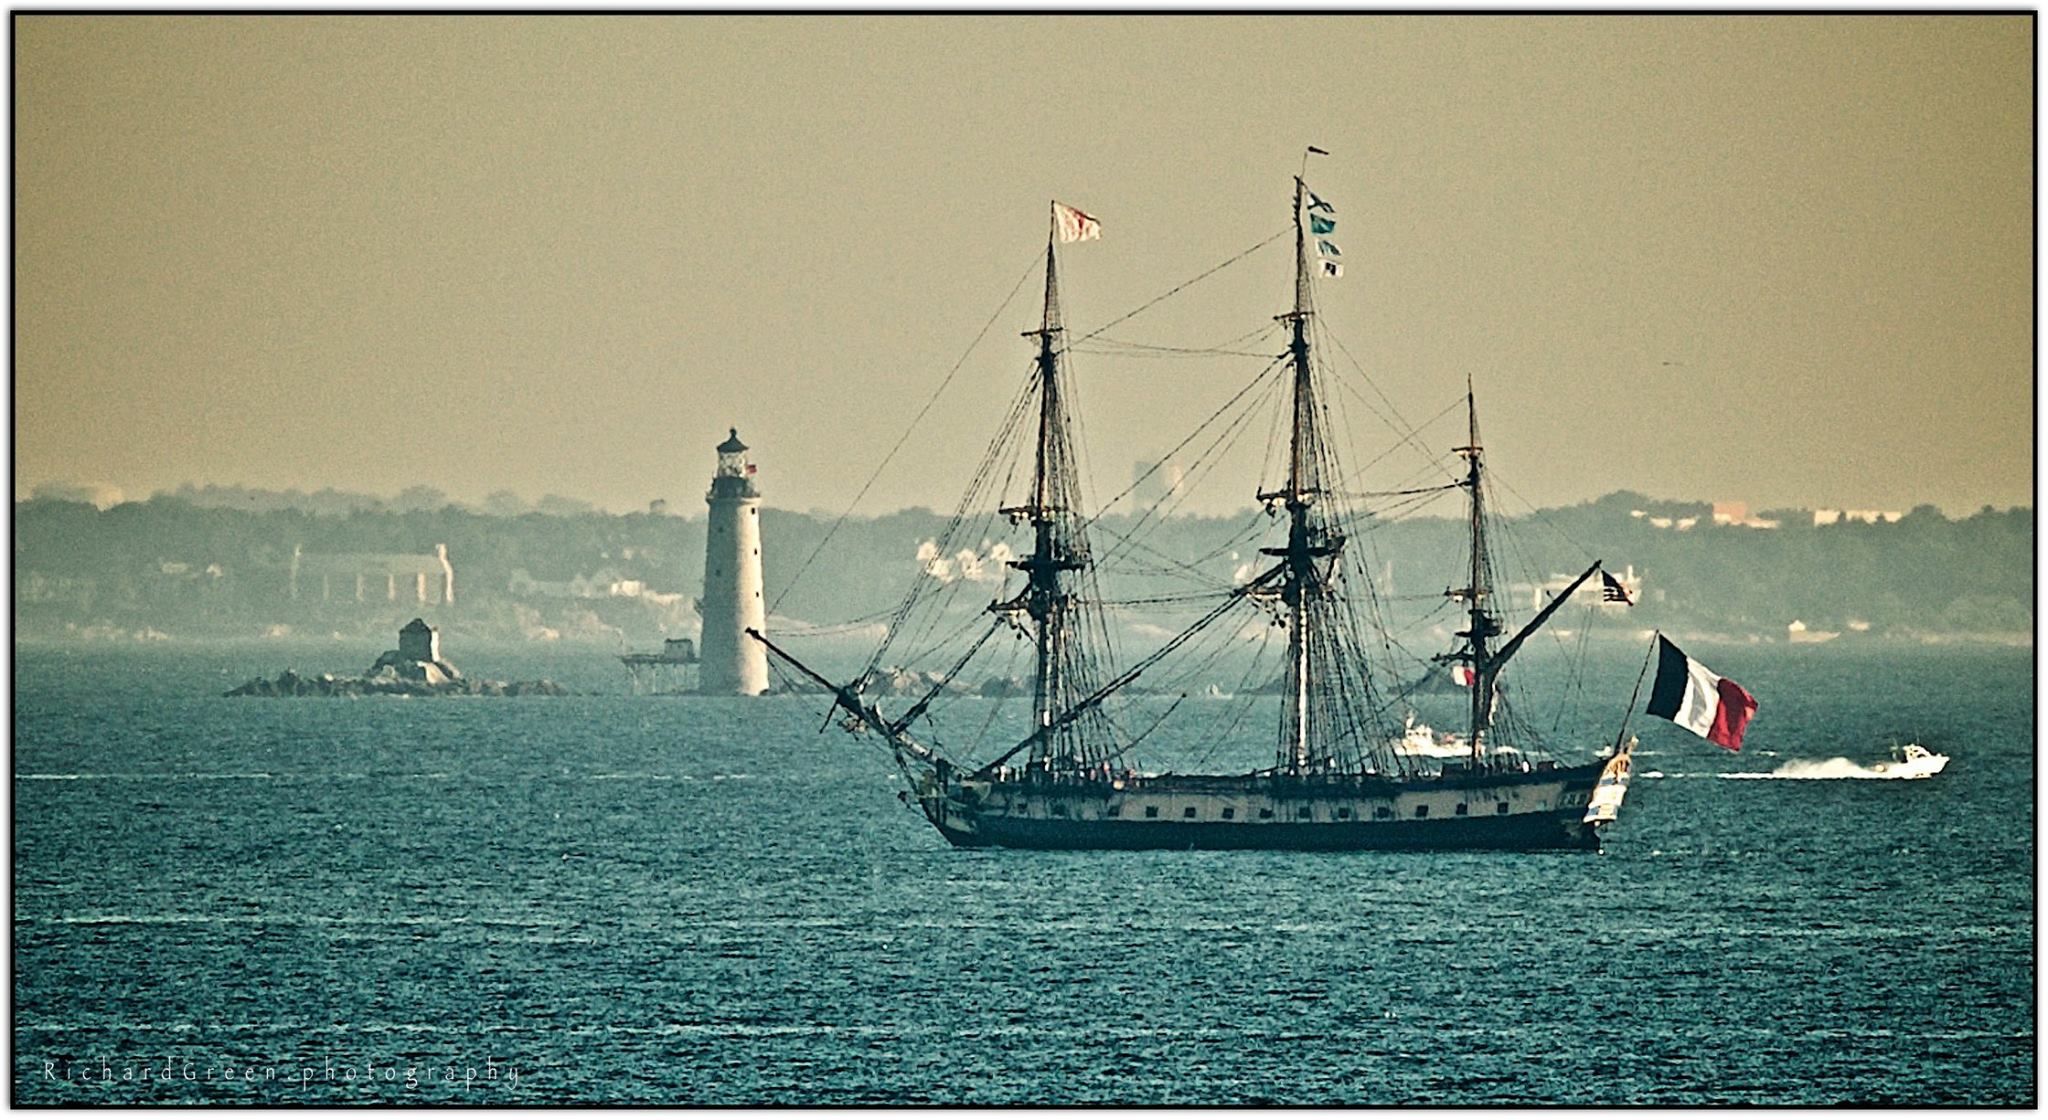 L'Hermione passes Graves Light while entering Boston Harbor. Photo by Richard Green.